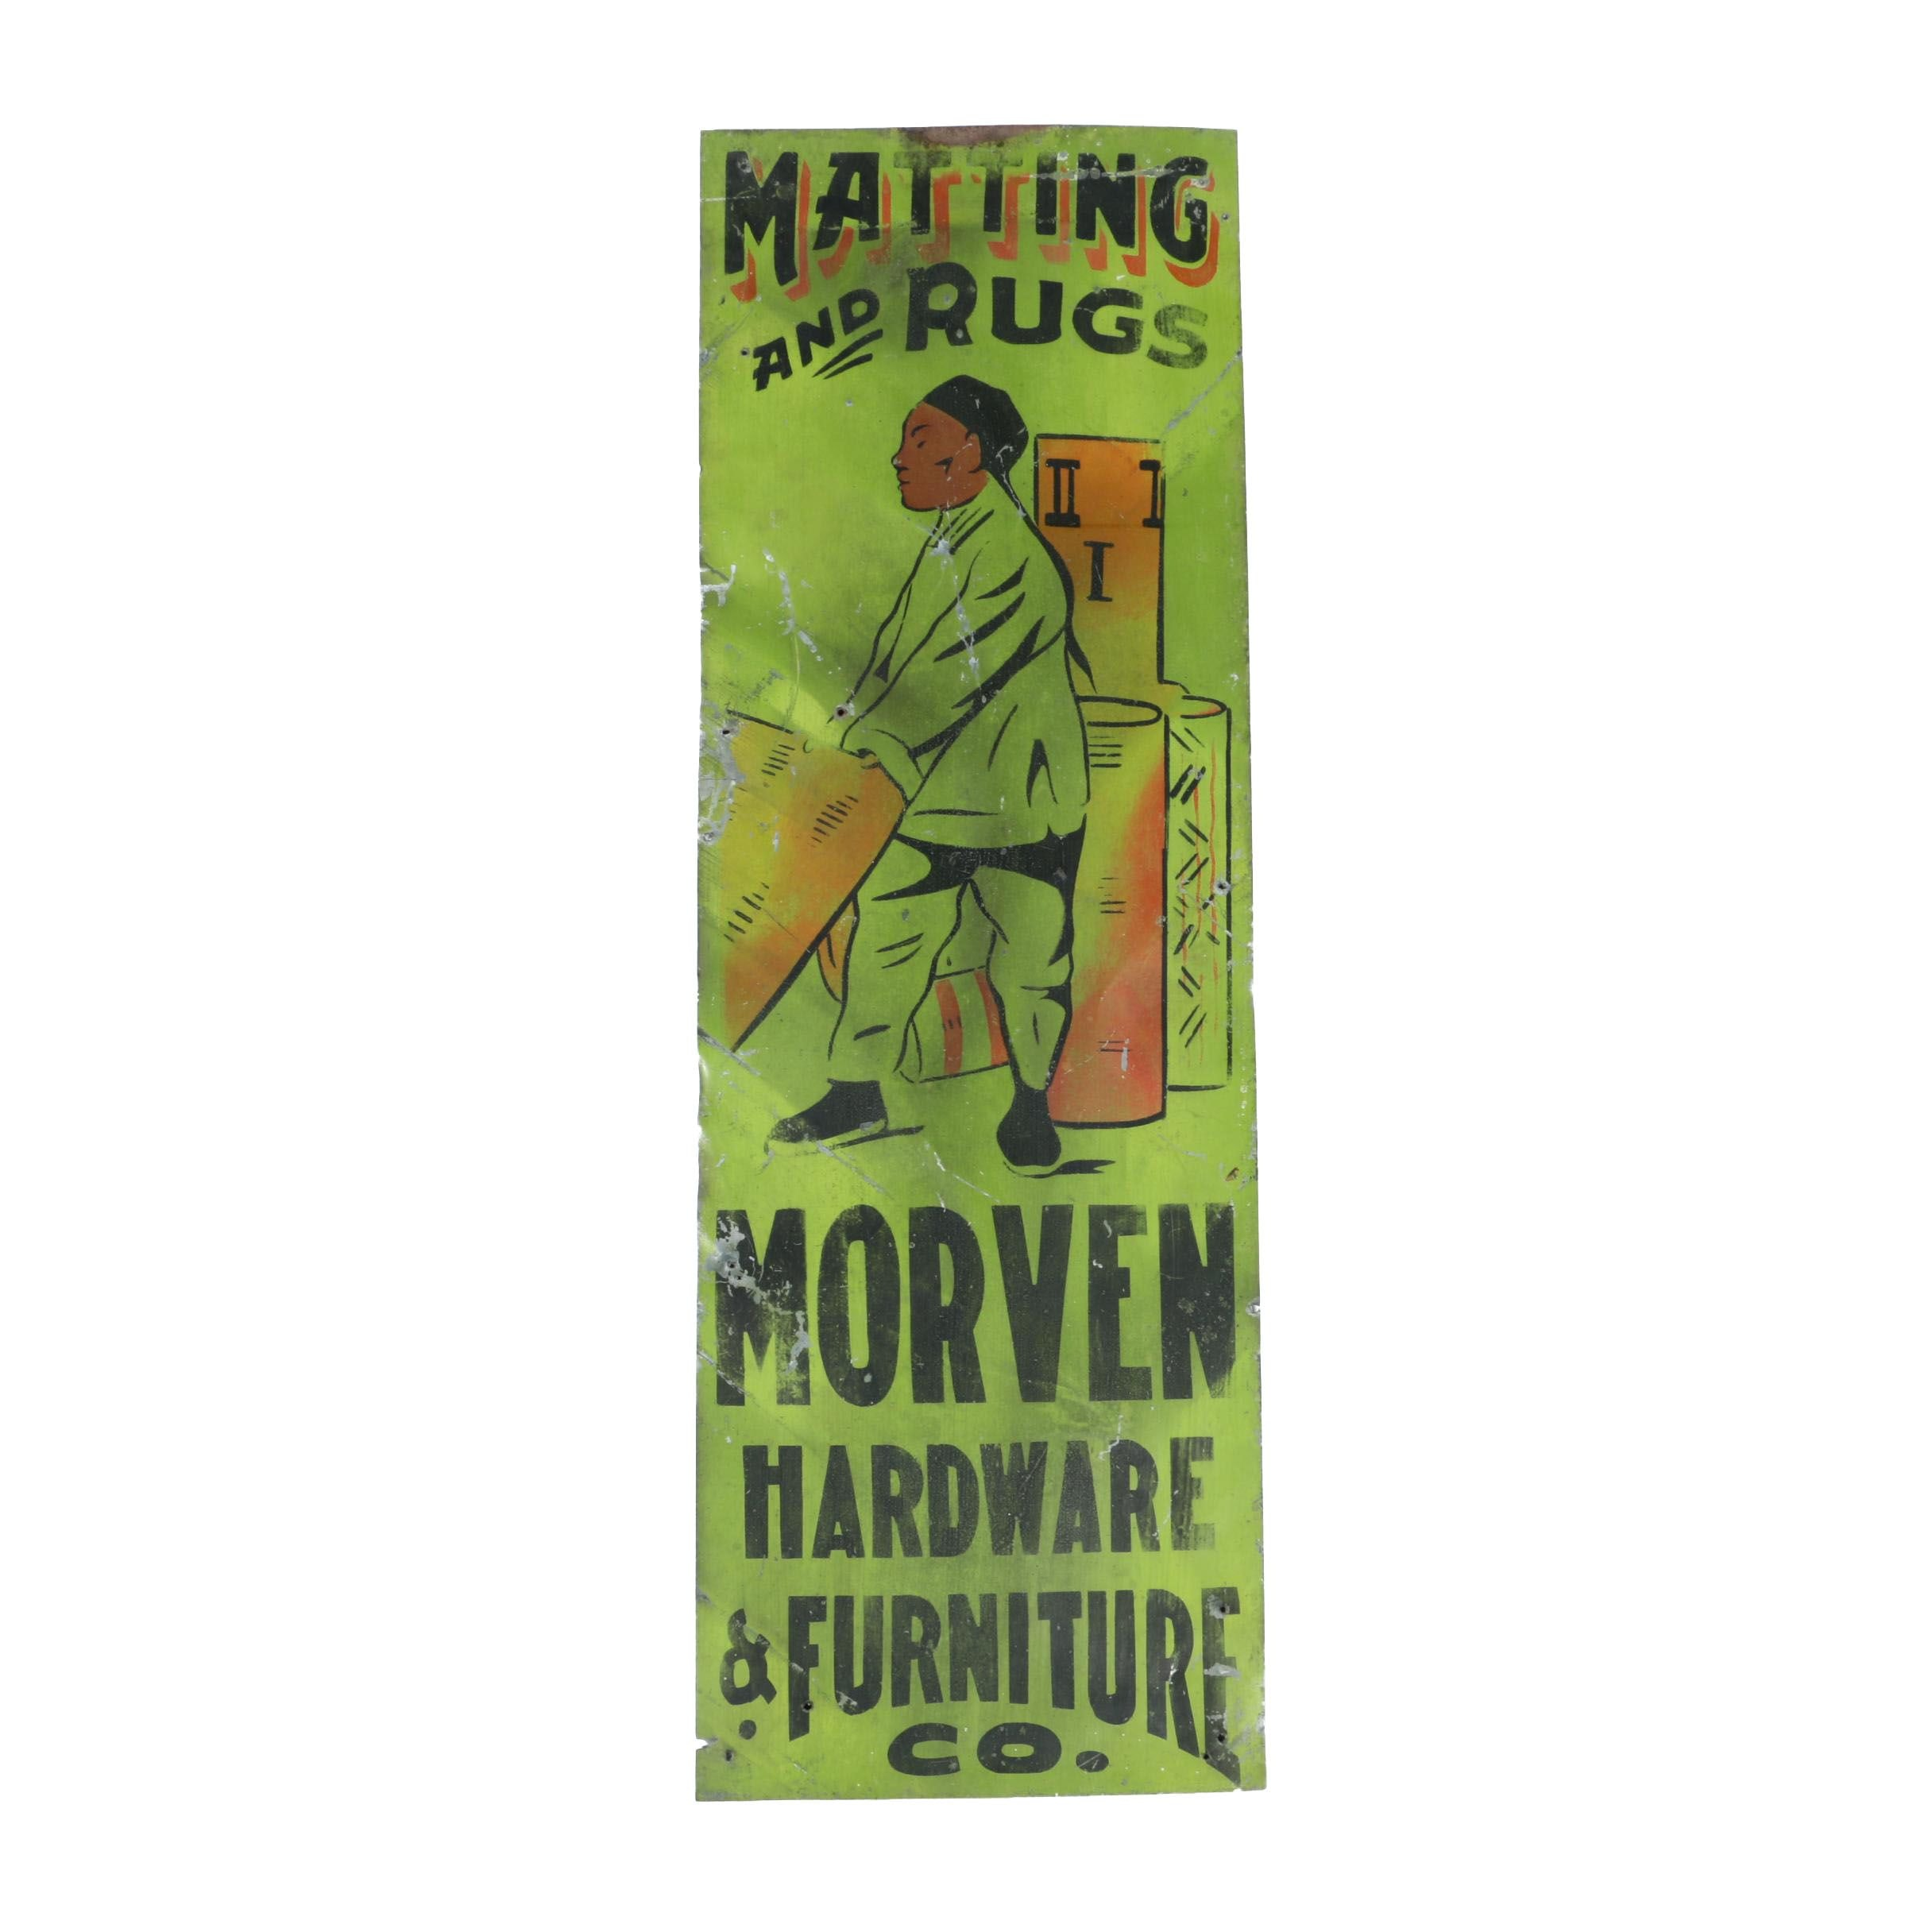 Vintage Morven Hardware & Furniture Advertisement Sign